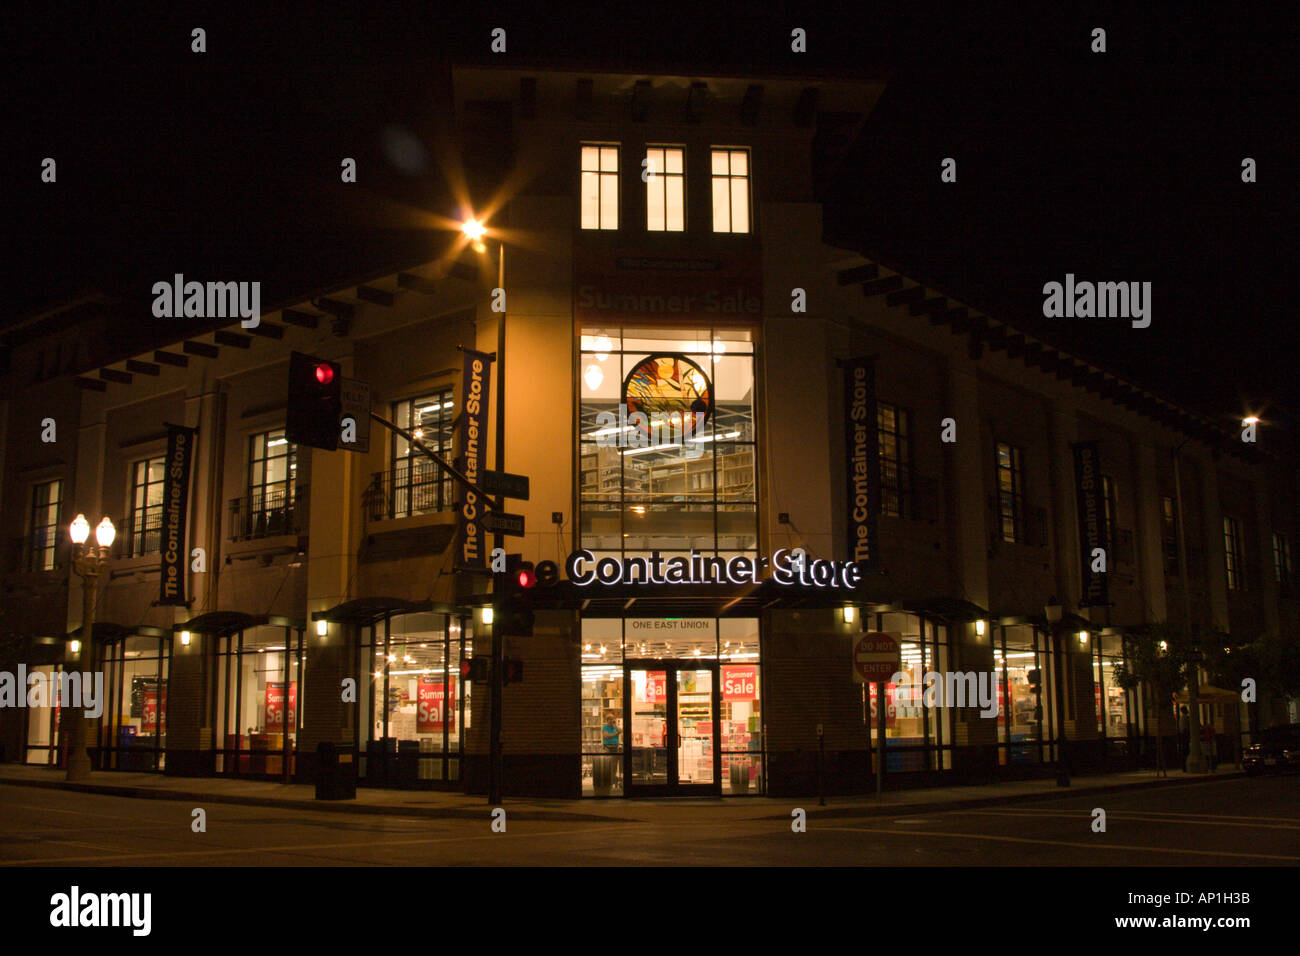 The Container Store, One East Union, Old Town Pasadena, Los Angeles County, Southern California - Stock Image